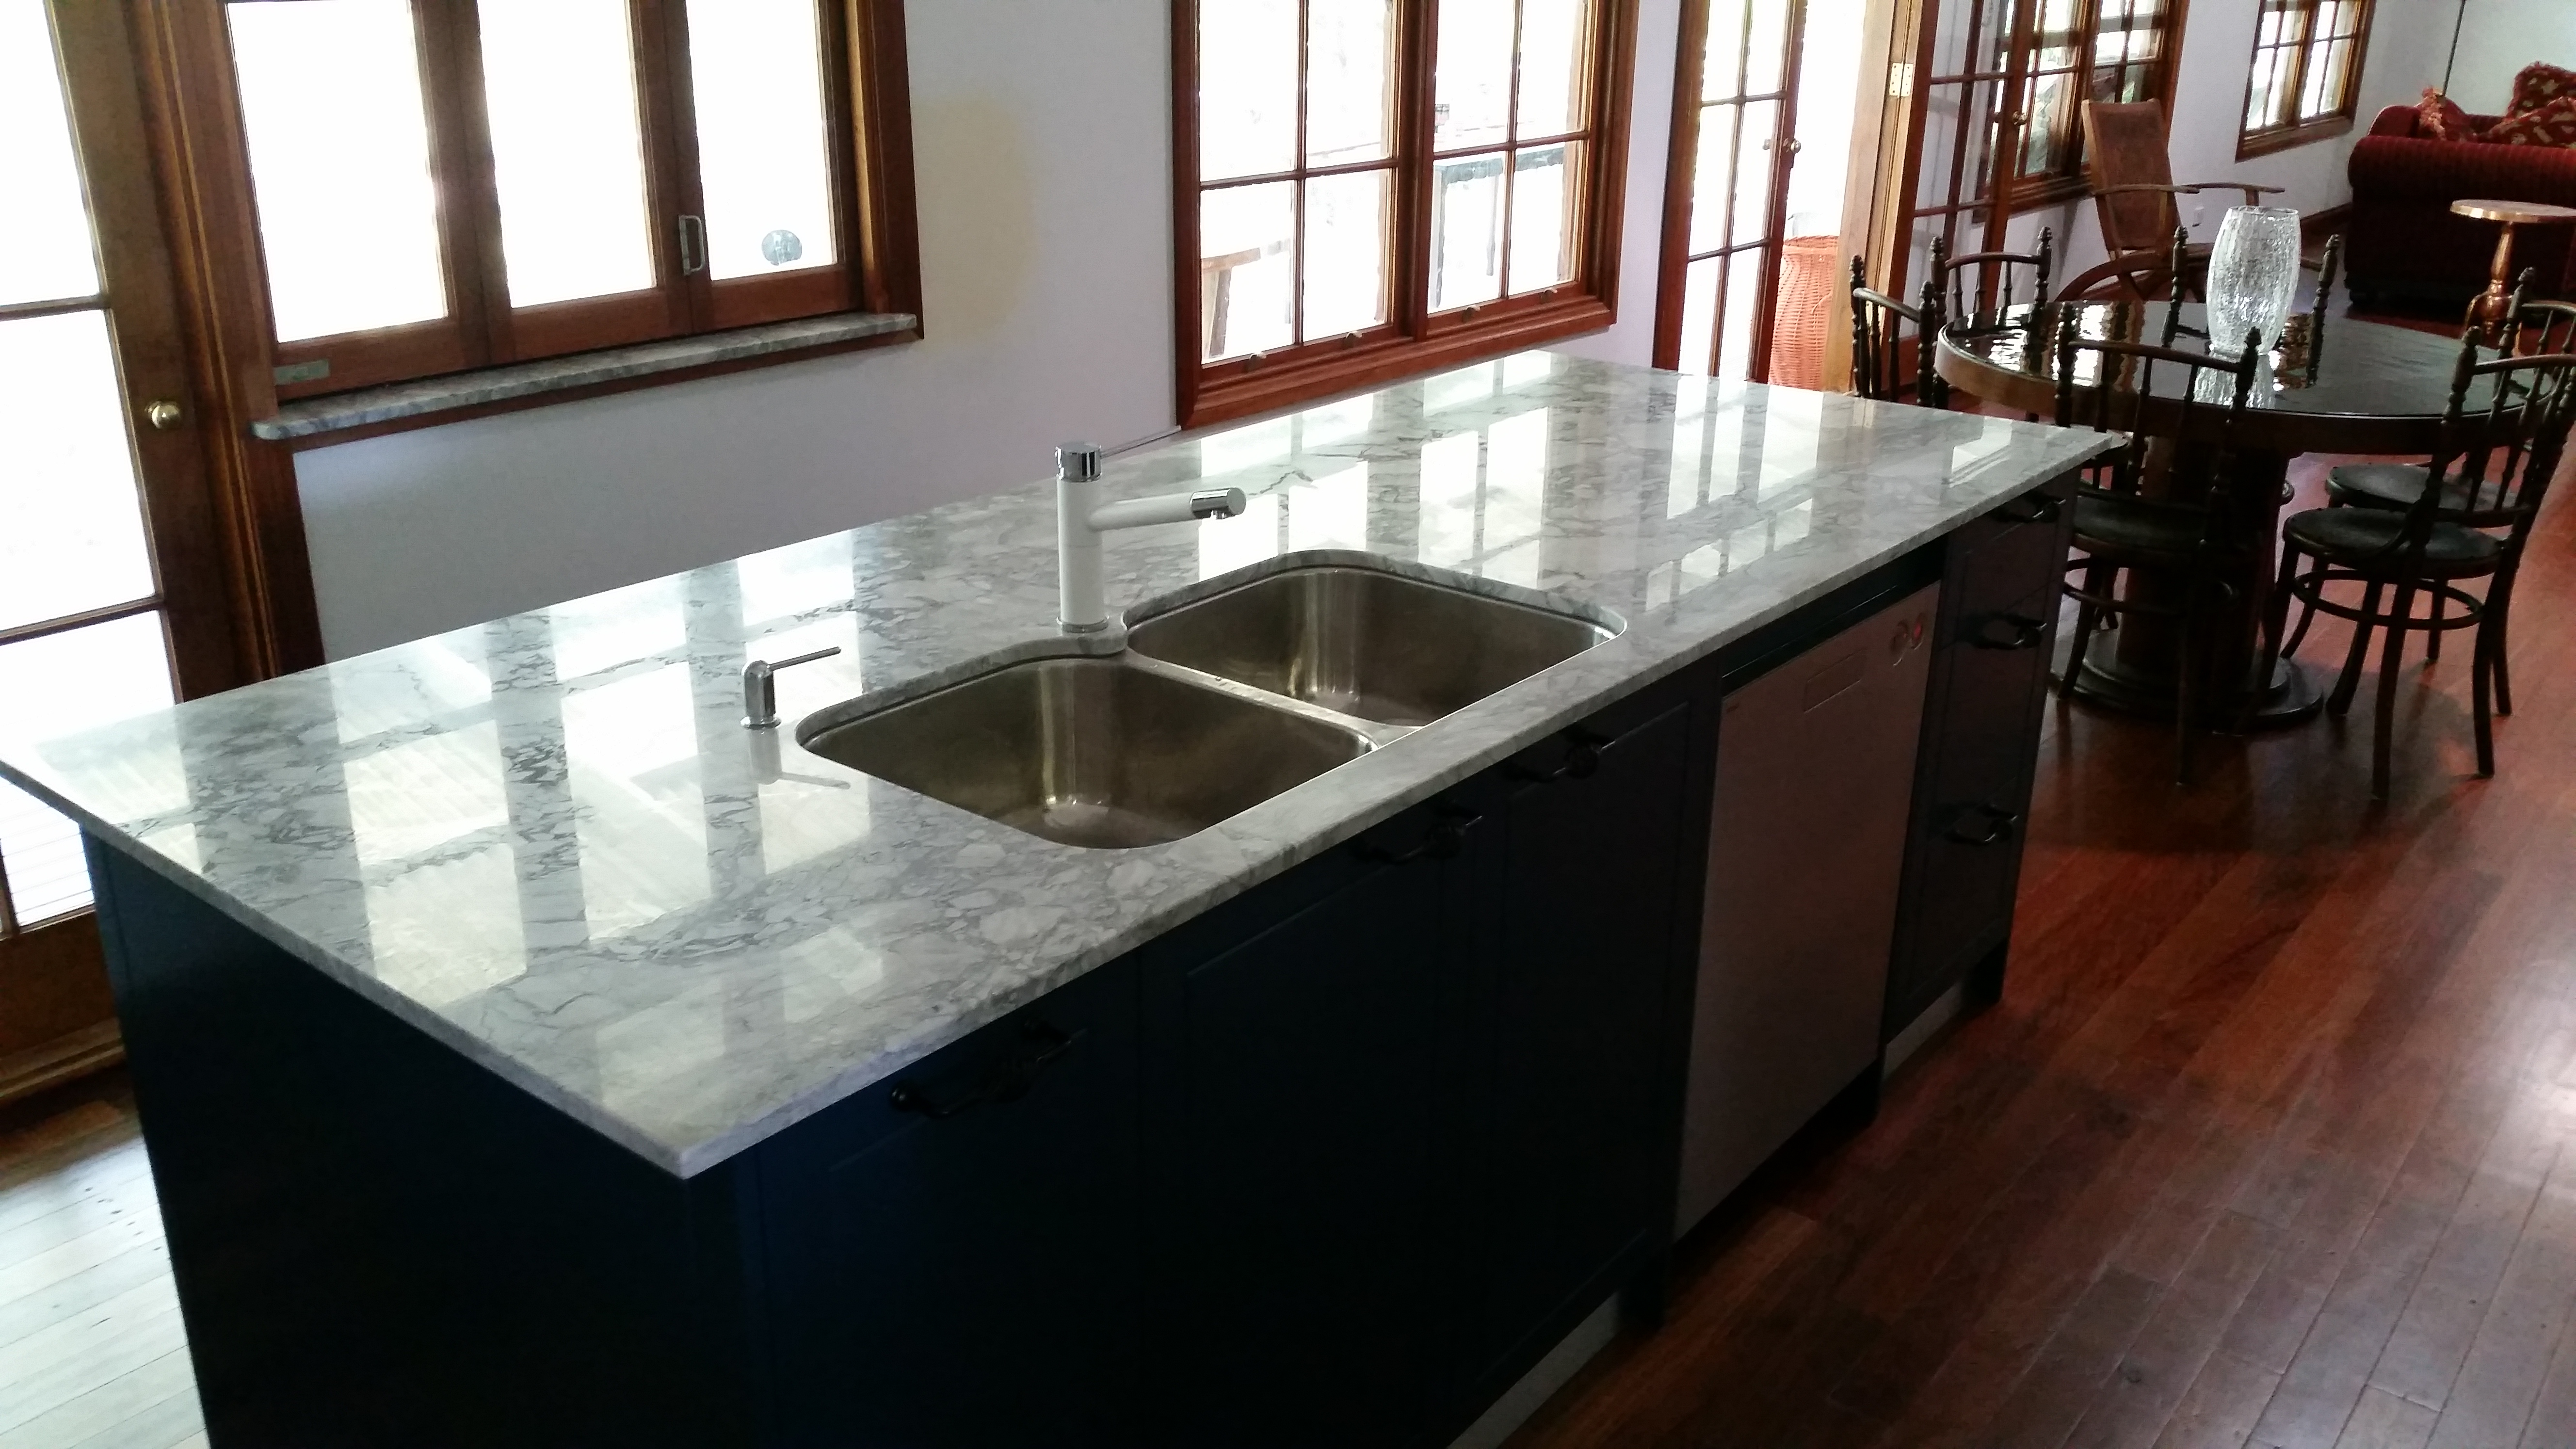 Kitchen Renovation at Buderim by Simon the Plumber